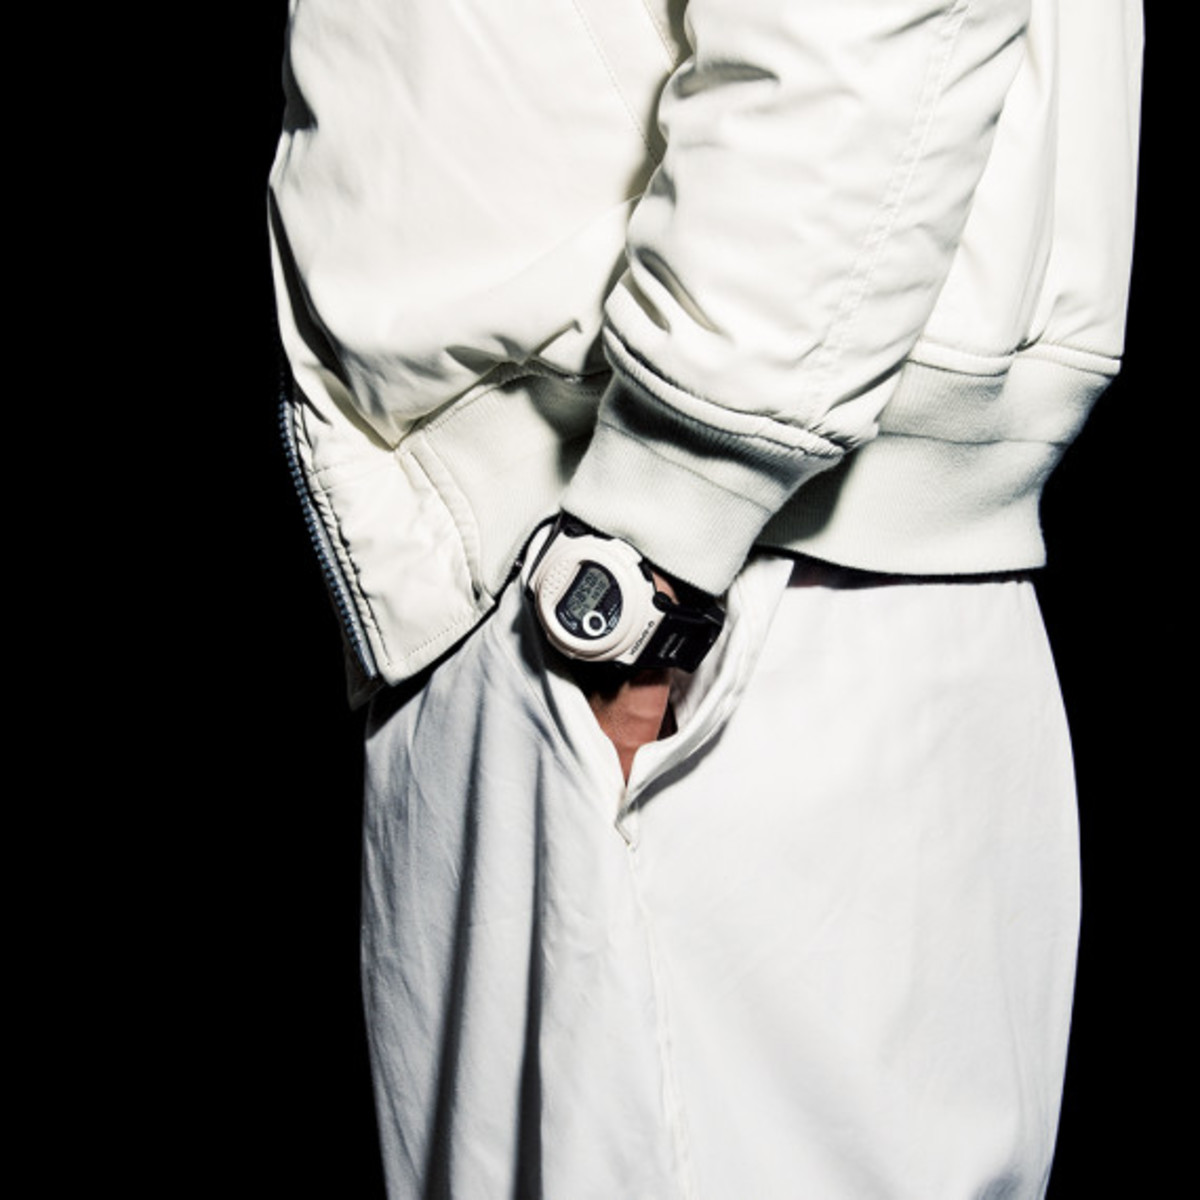 casio-g-shock-white-and-black-series-04